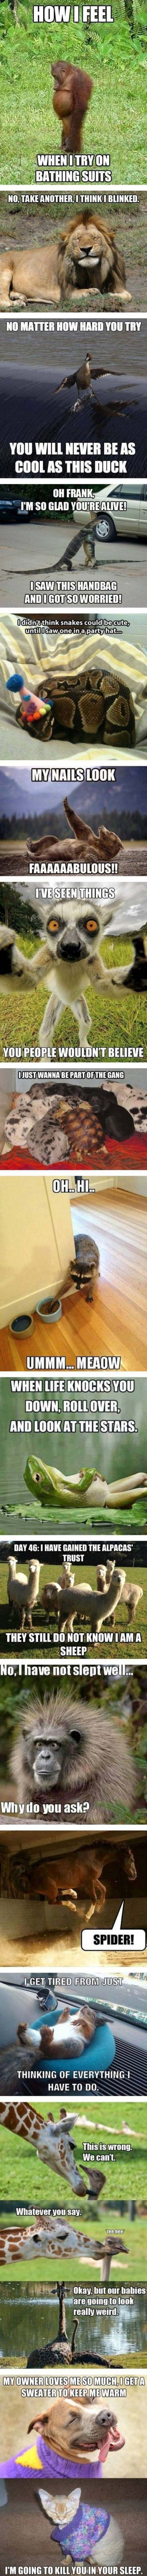 funny pictures with captions 222 (53 pict)   Funny pictures #compartirvideos #funnypictures #funnydogwithcaptions